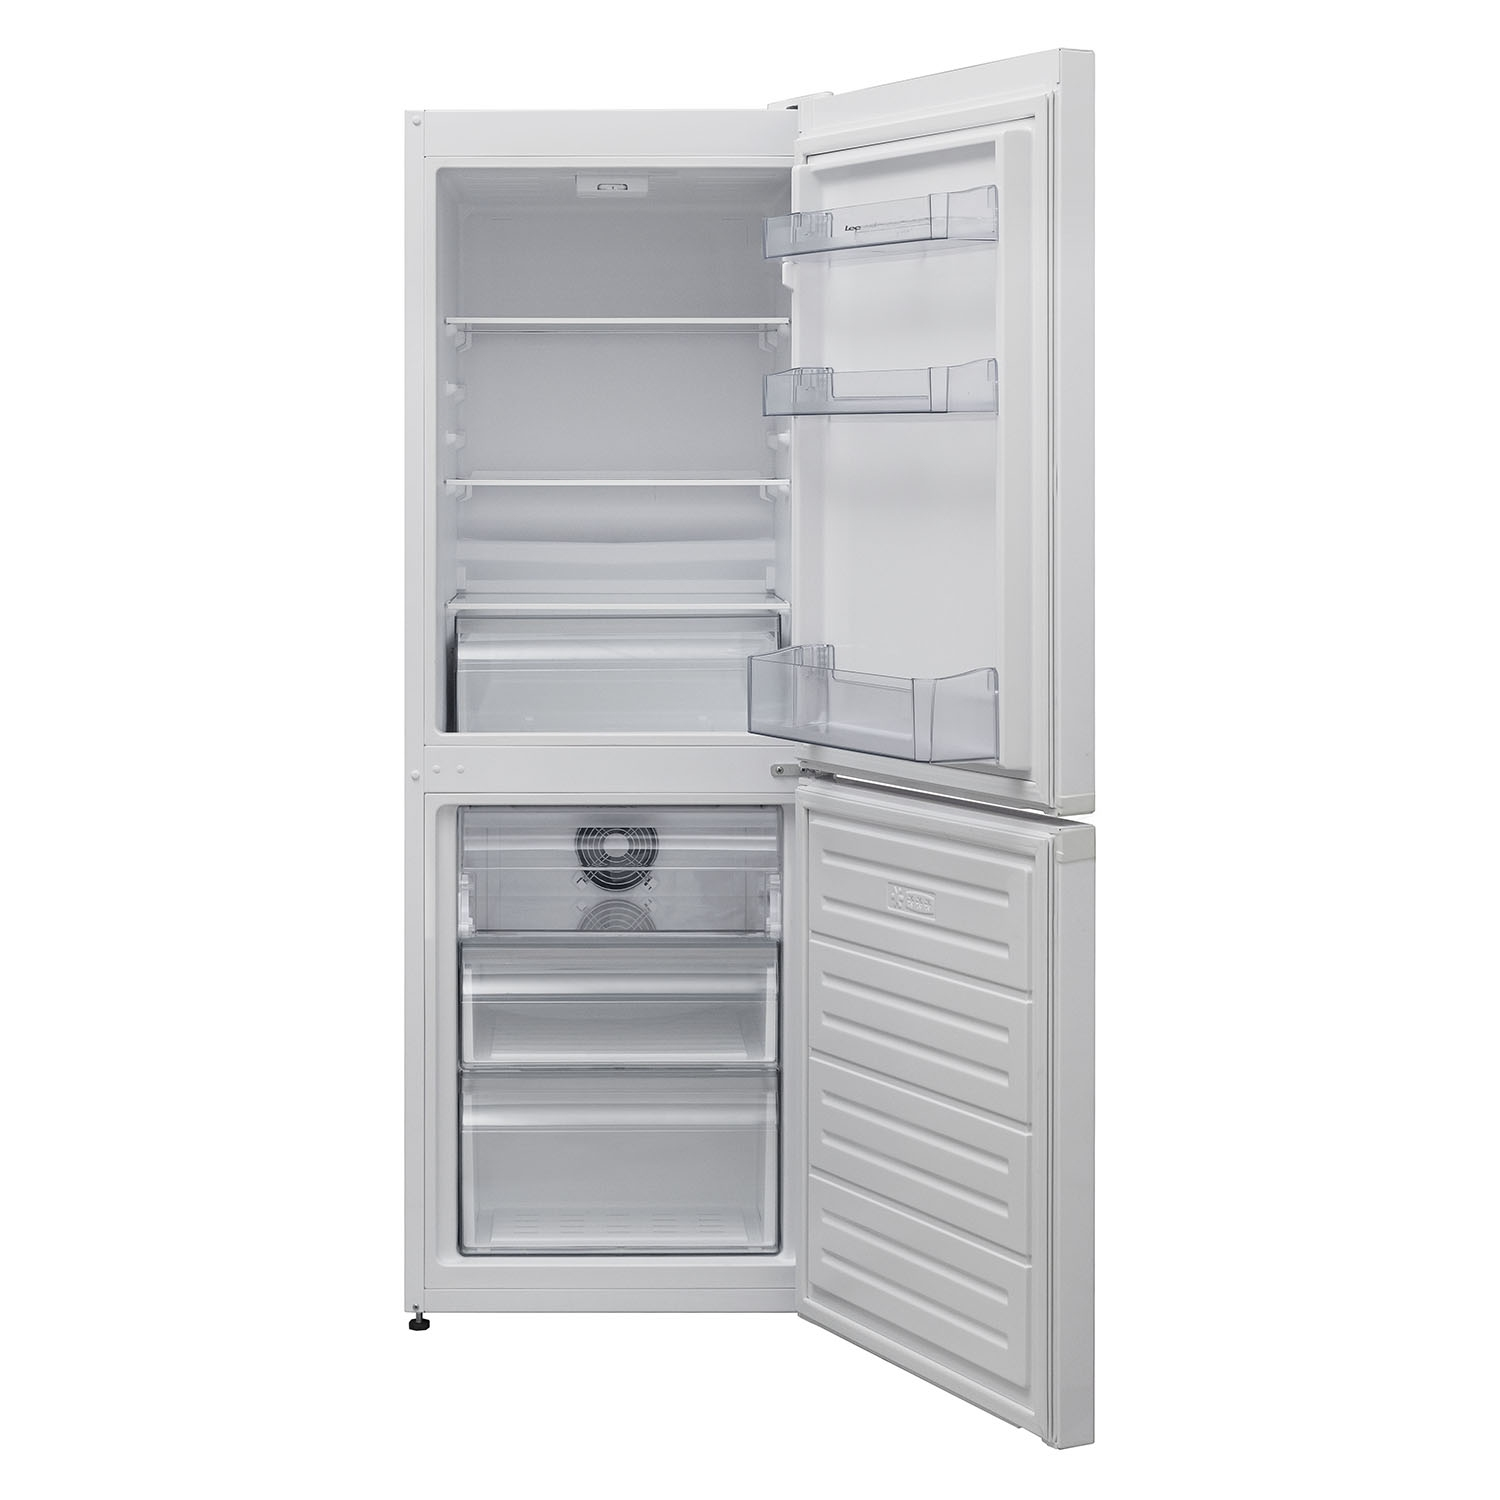 Lec Fridge Freezer - Frost Free - White - A+ Energy Rated - 0